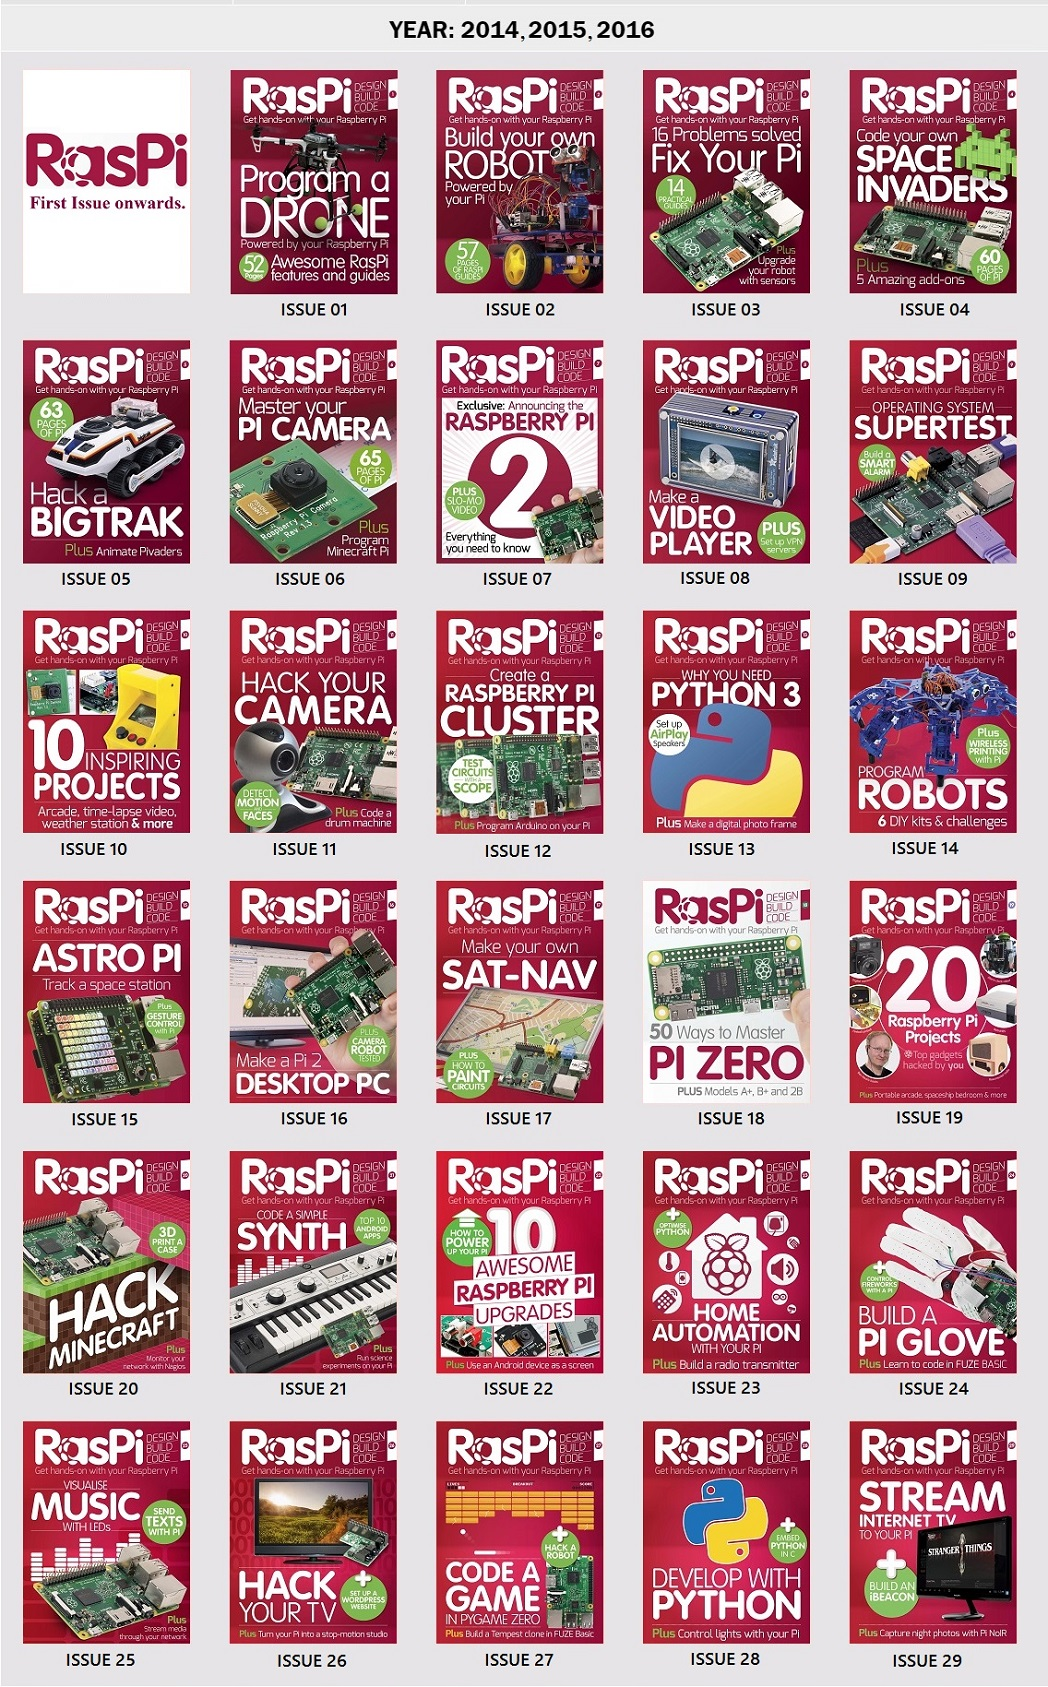 RasPi Magazine UK – Full Year Collection 2014, 2015, 2016